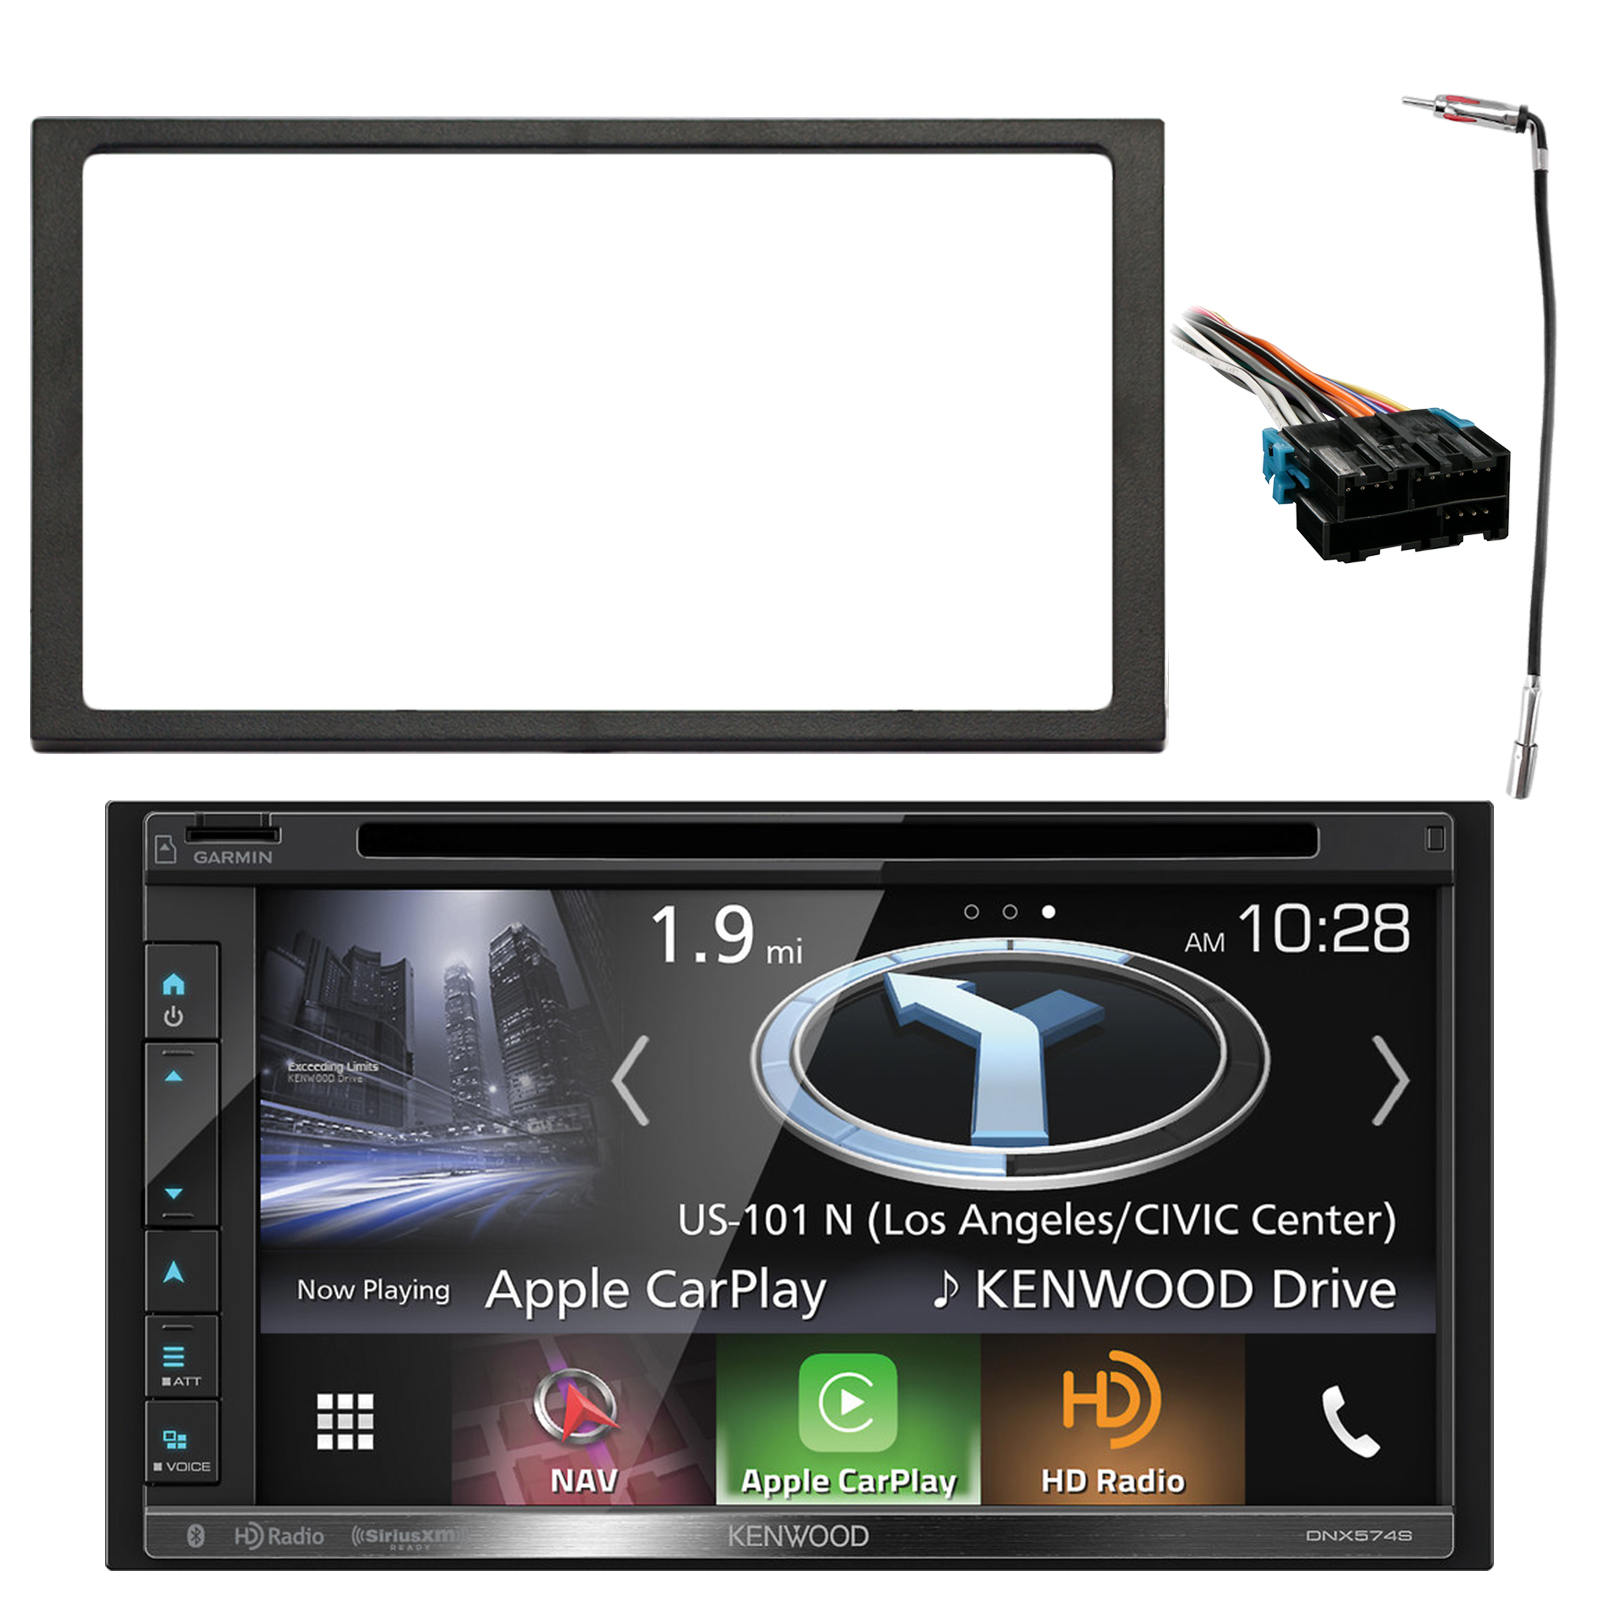 "Kenwood 2-DIN Navigation In-Dash DVD/CD/AM/FM Bluetooth Car Stereo w/ 6.8"" Resistive Panel, Enrock Double DIN Install Dash Kit, Metra Radio Wiring Harness, Antenna Adapter (Select 1994-2005 Vehicles)"